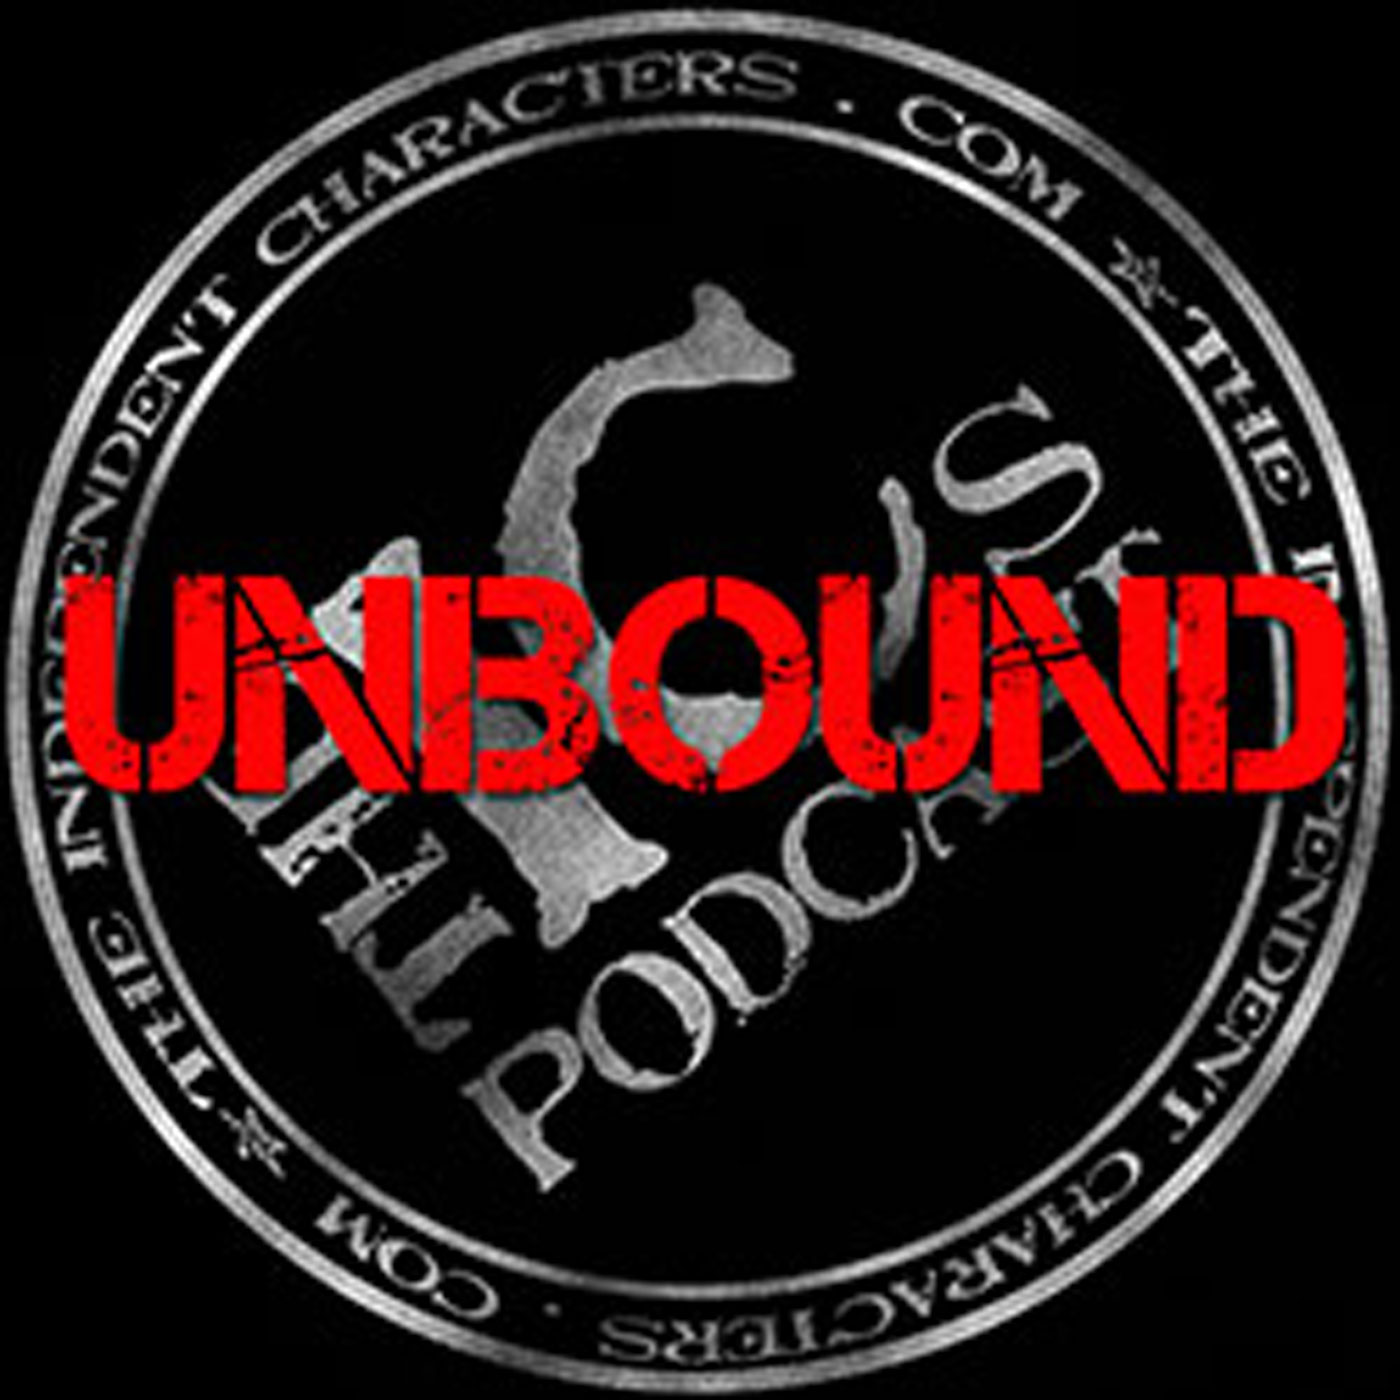 The Independent Characters Unbound logo